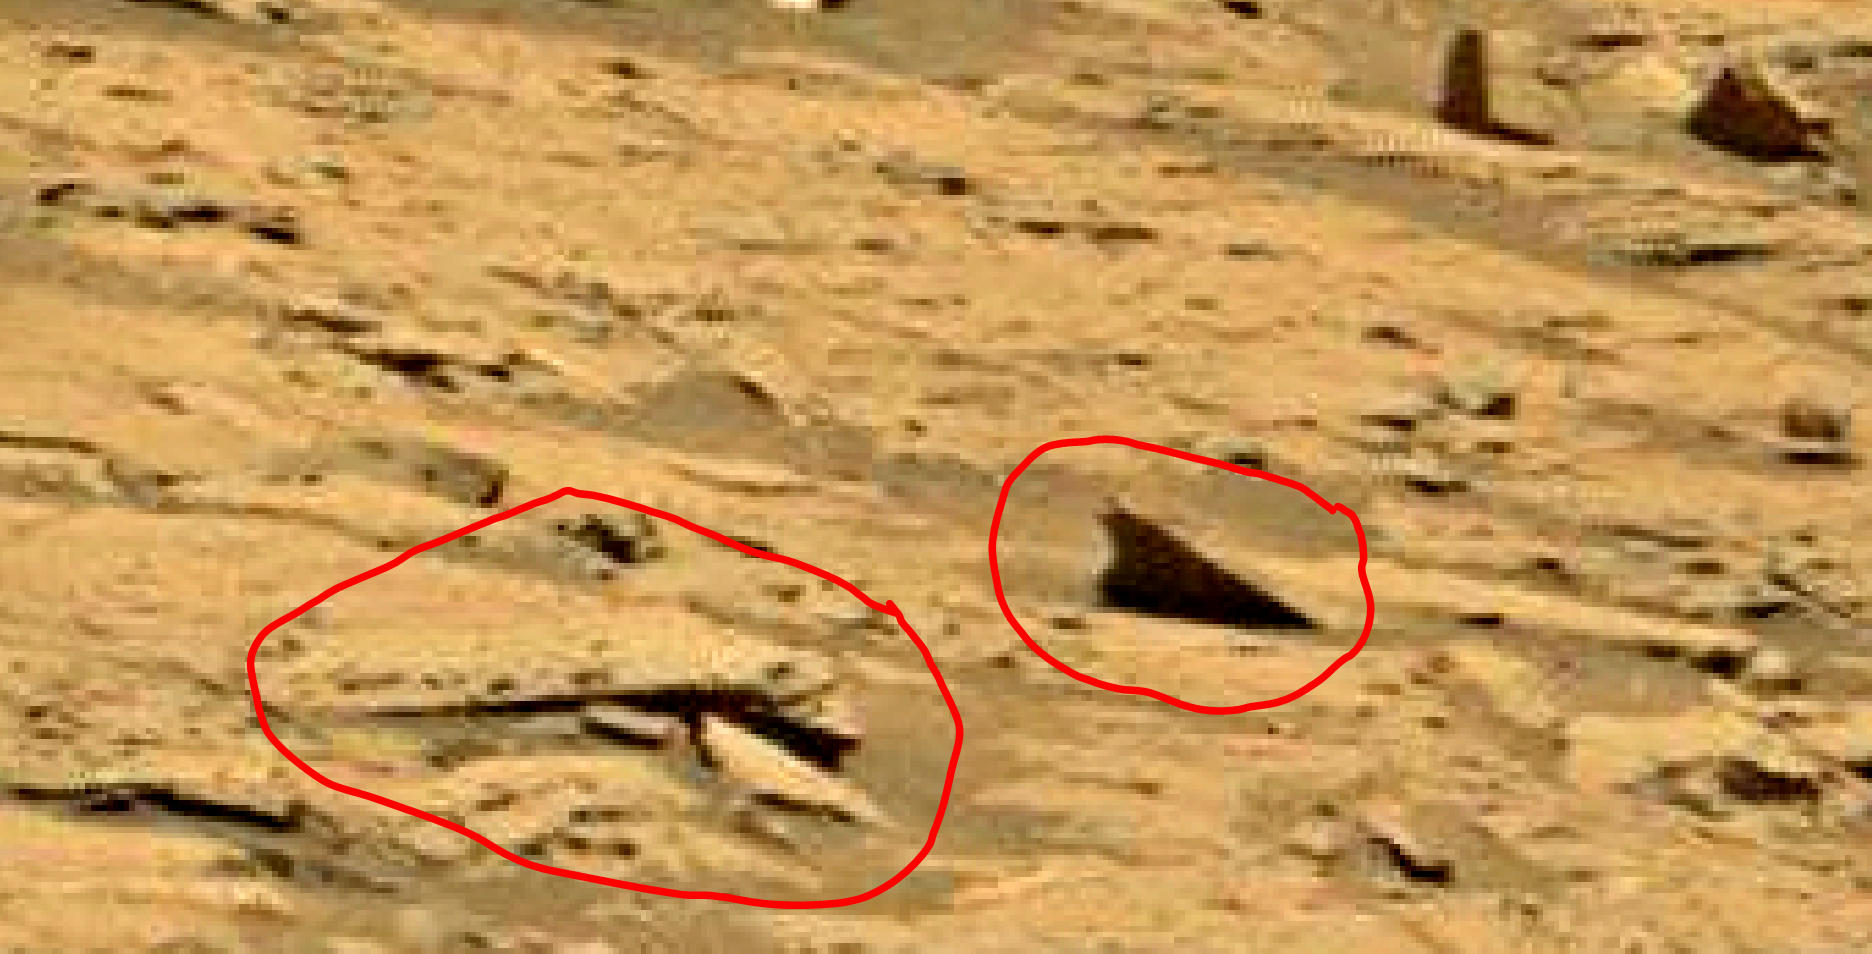 mars sol 1353 anomaly-artifacts 59-1 was life on mars